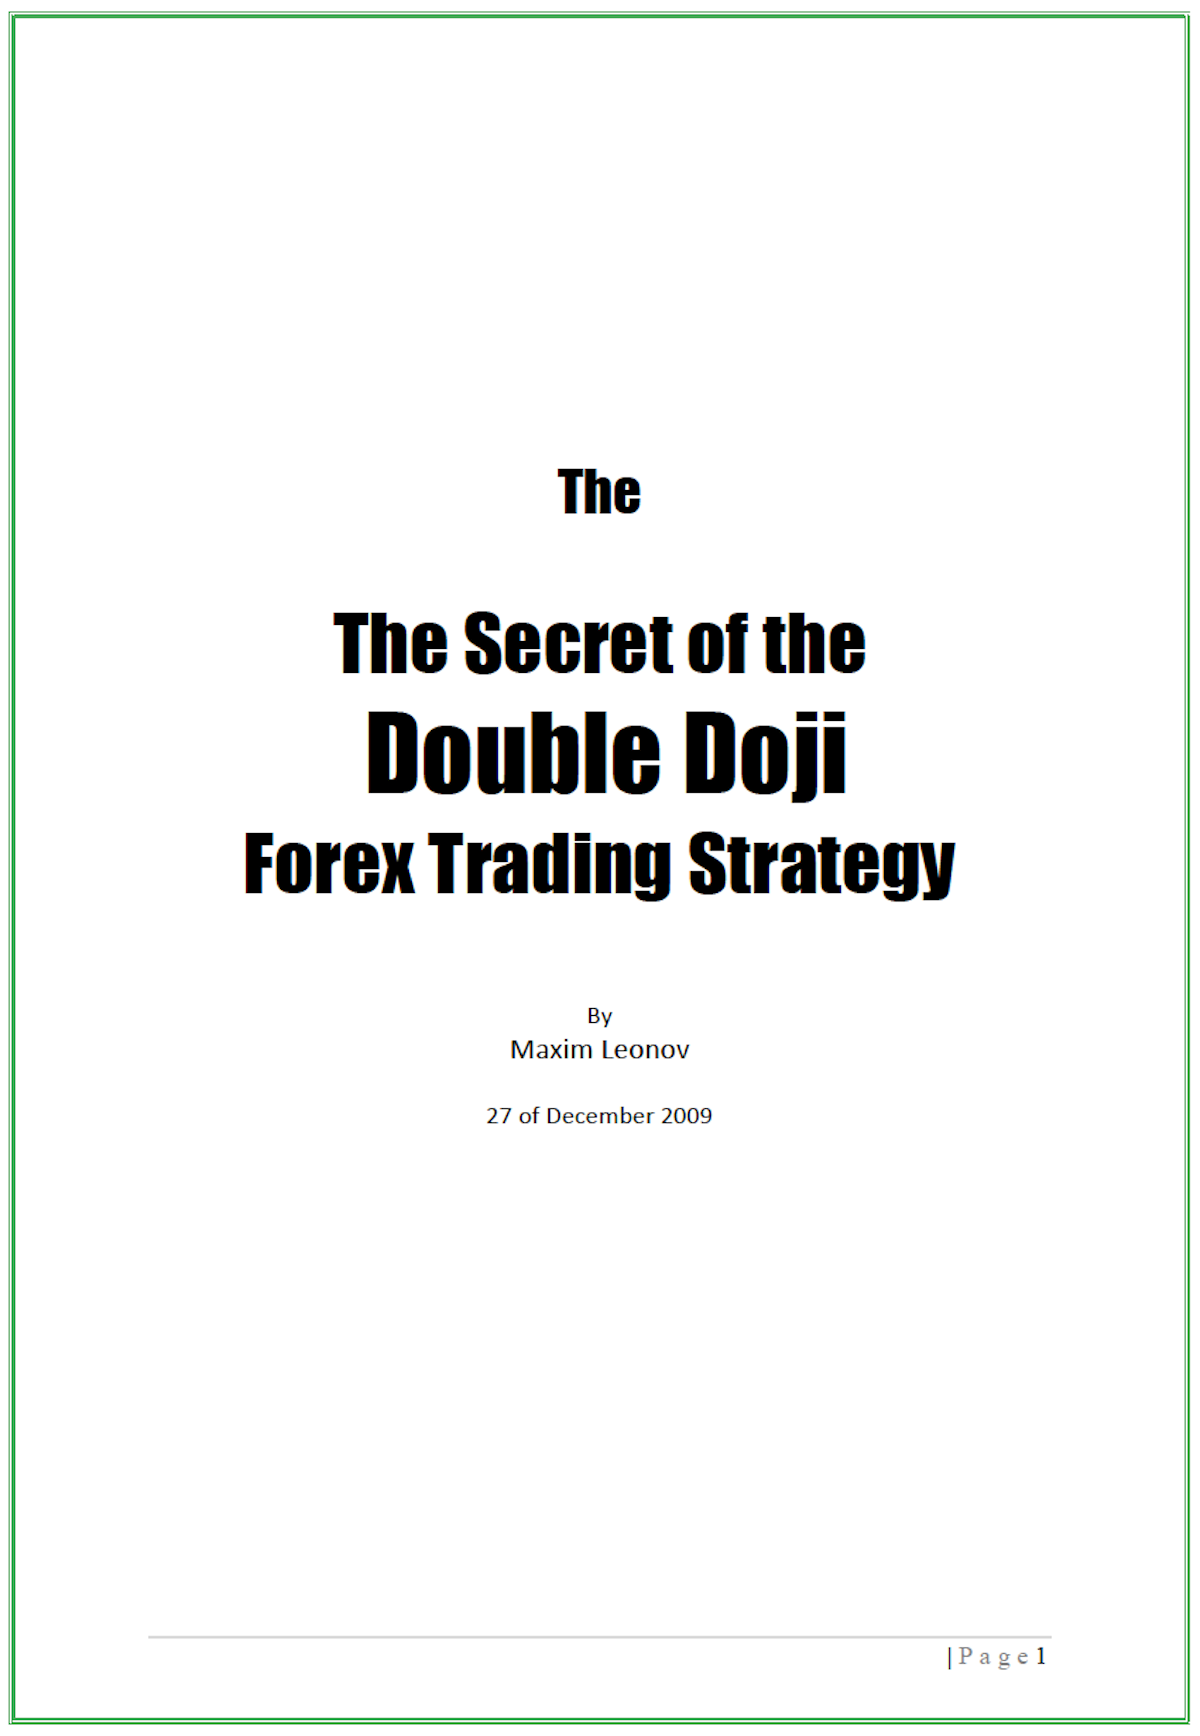 『The Secret of the Double Doji Forex Trading Strategy』(=ダブル同時線 外国為替取引戦略の秘密)